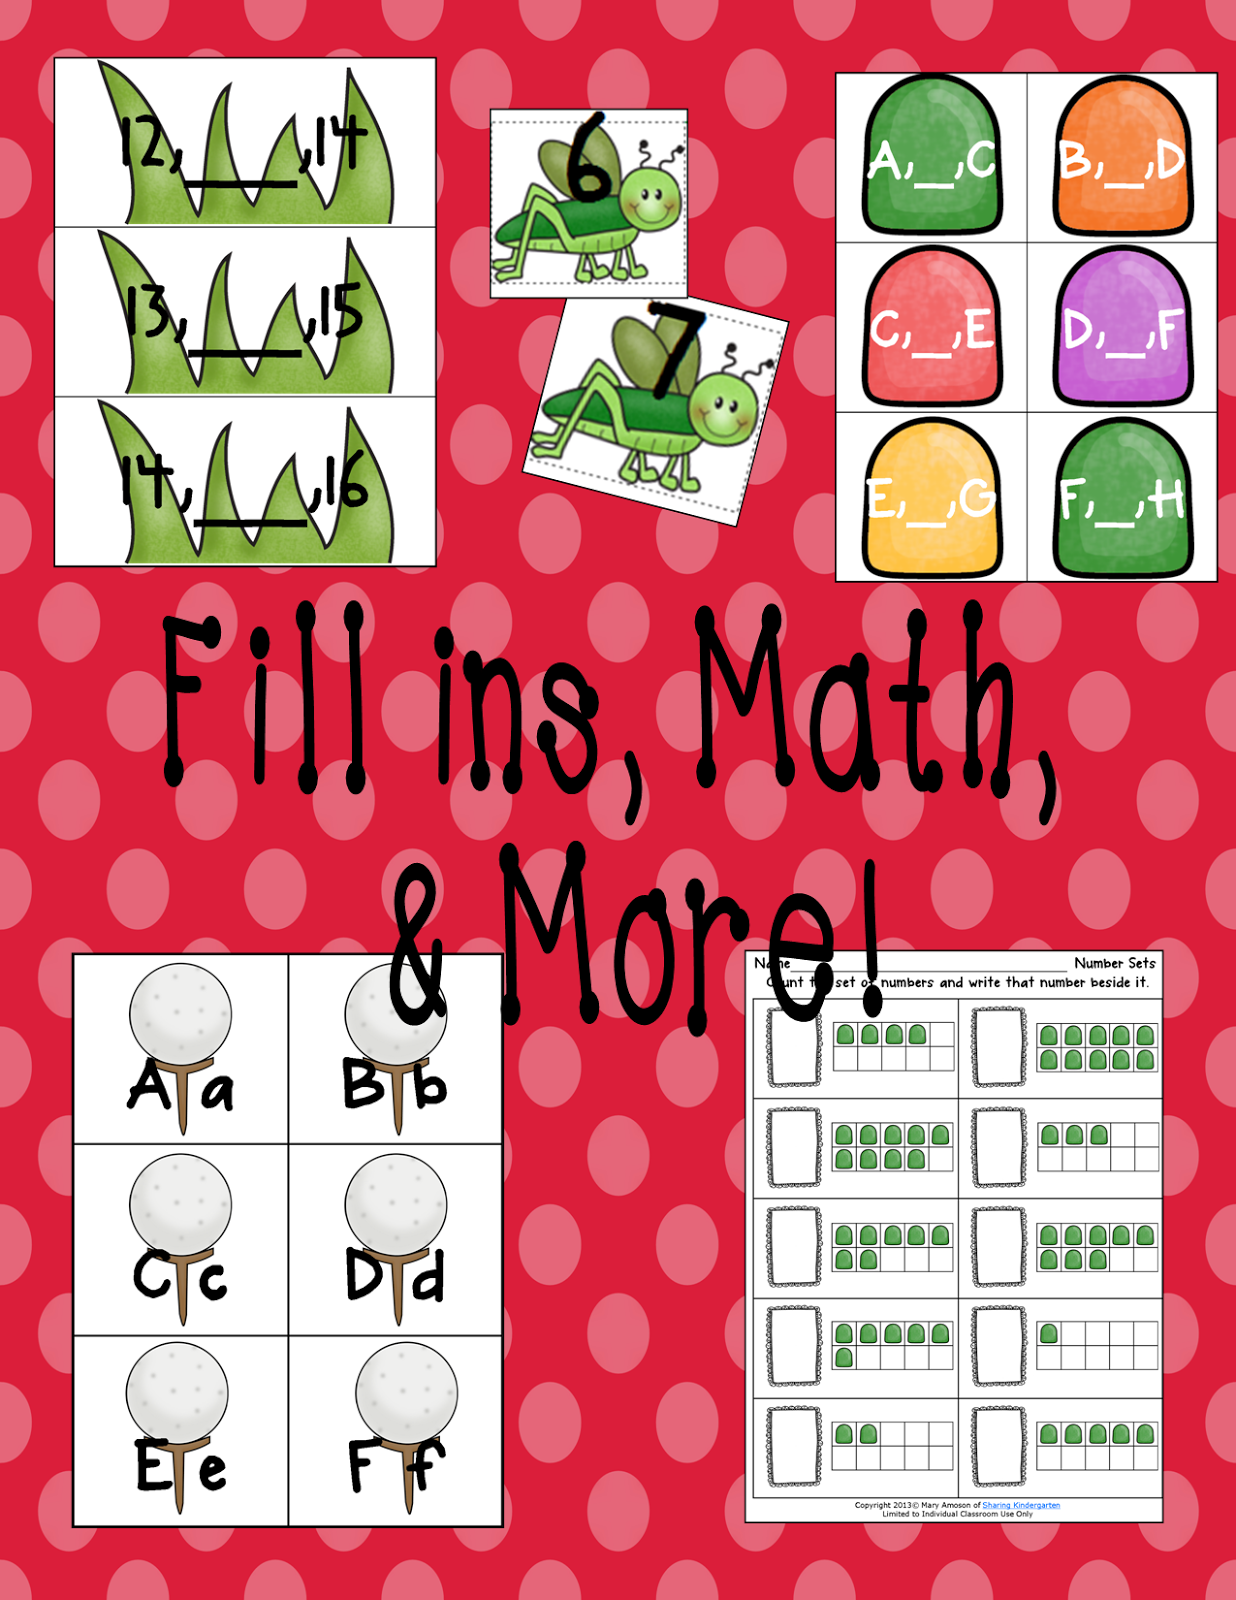 http://www.teacherspayteachers.com/Product/Gg-Activities-727509